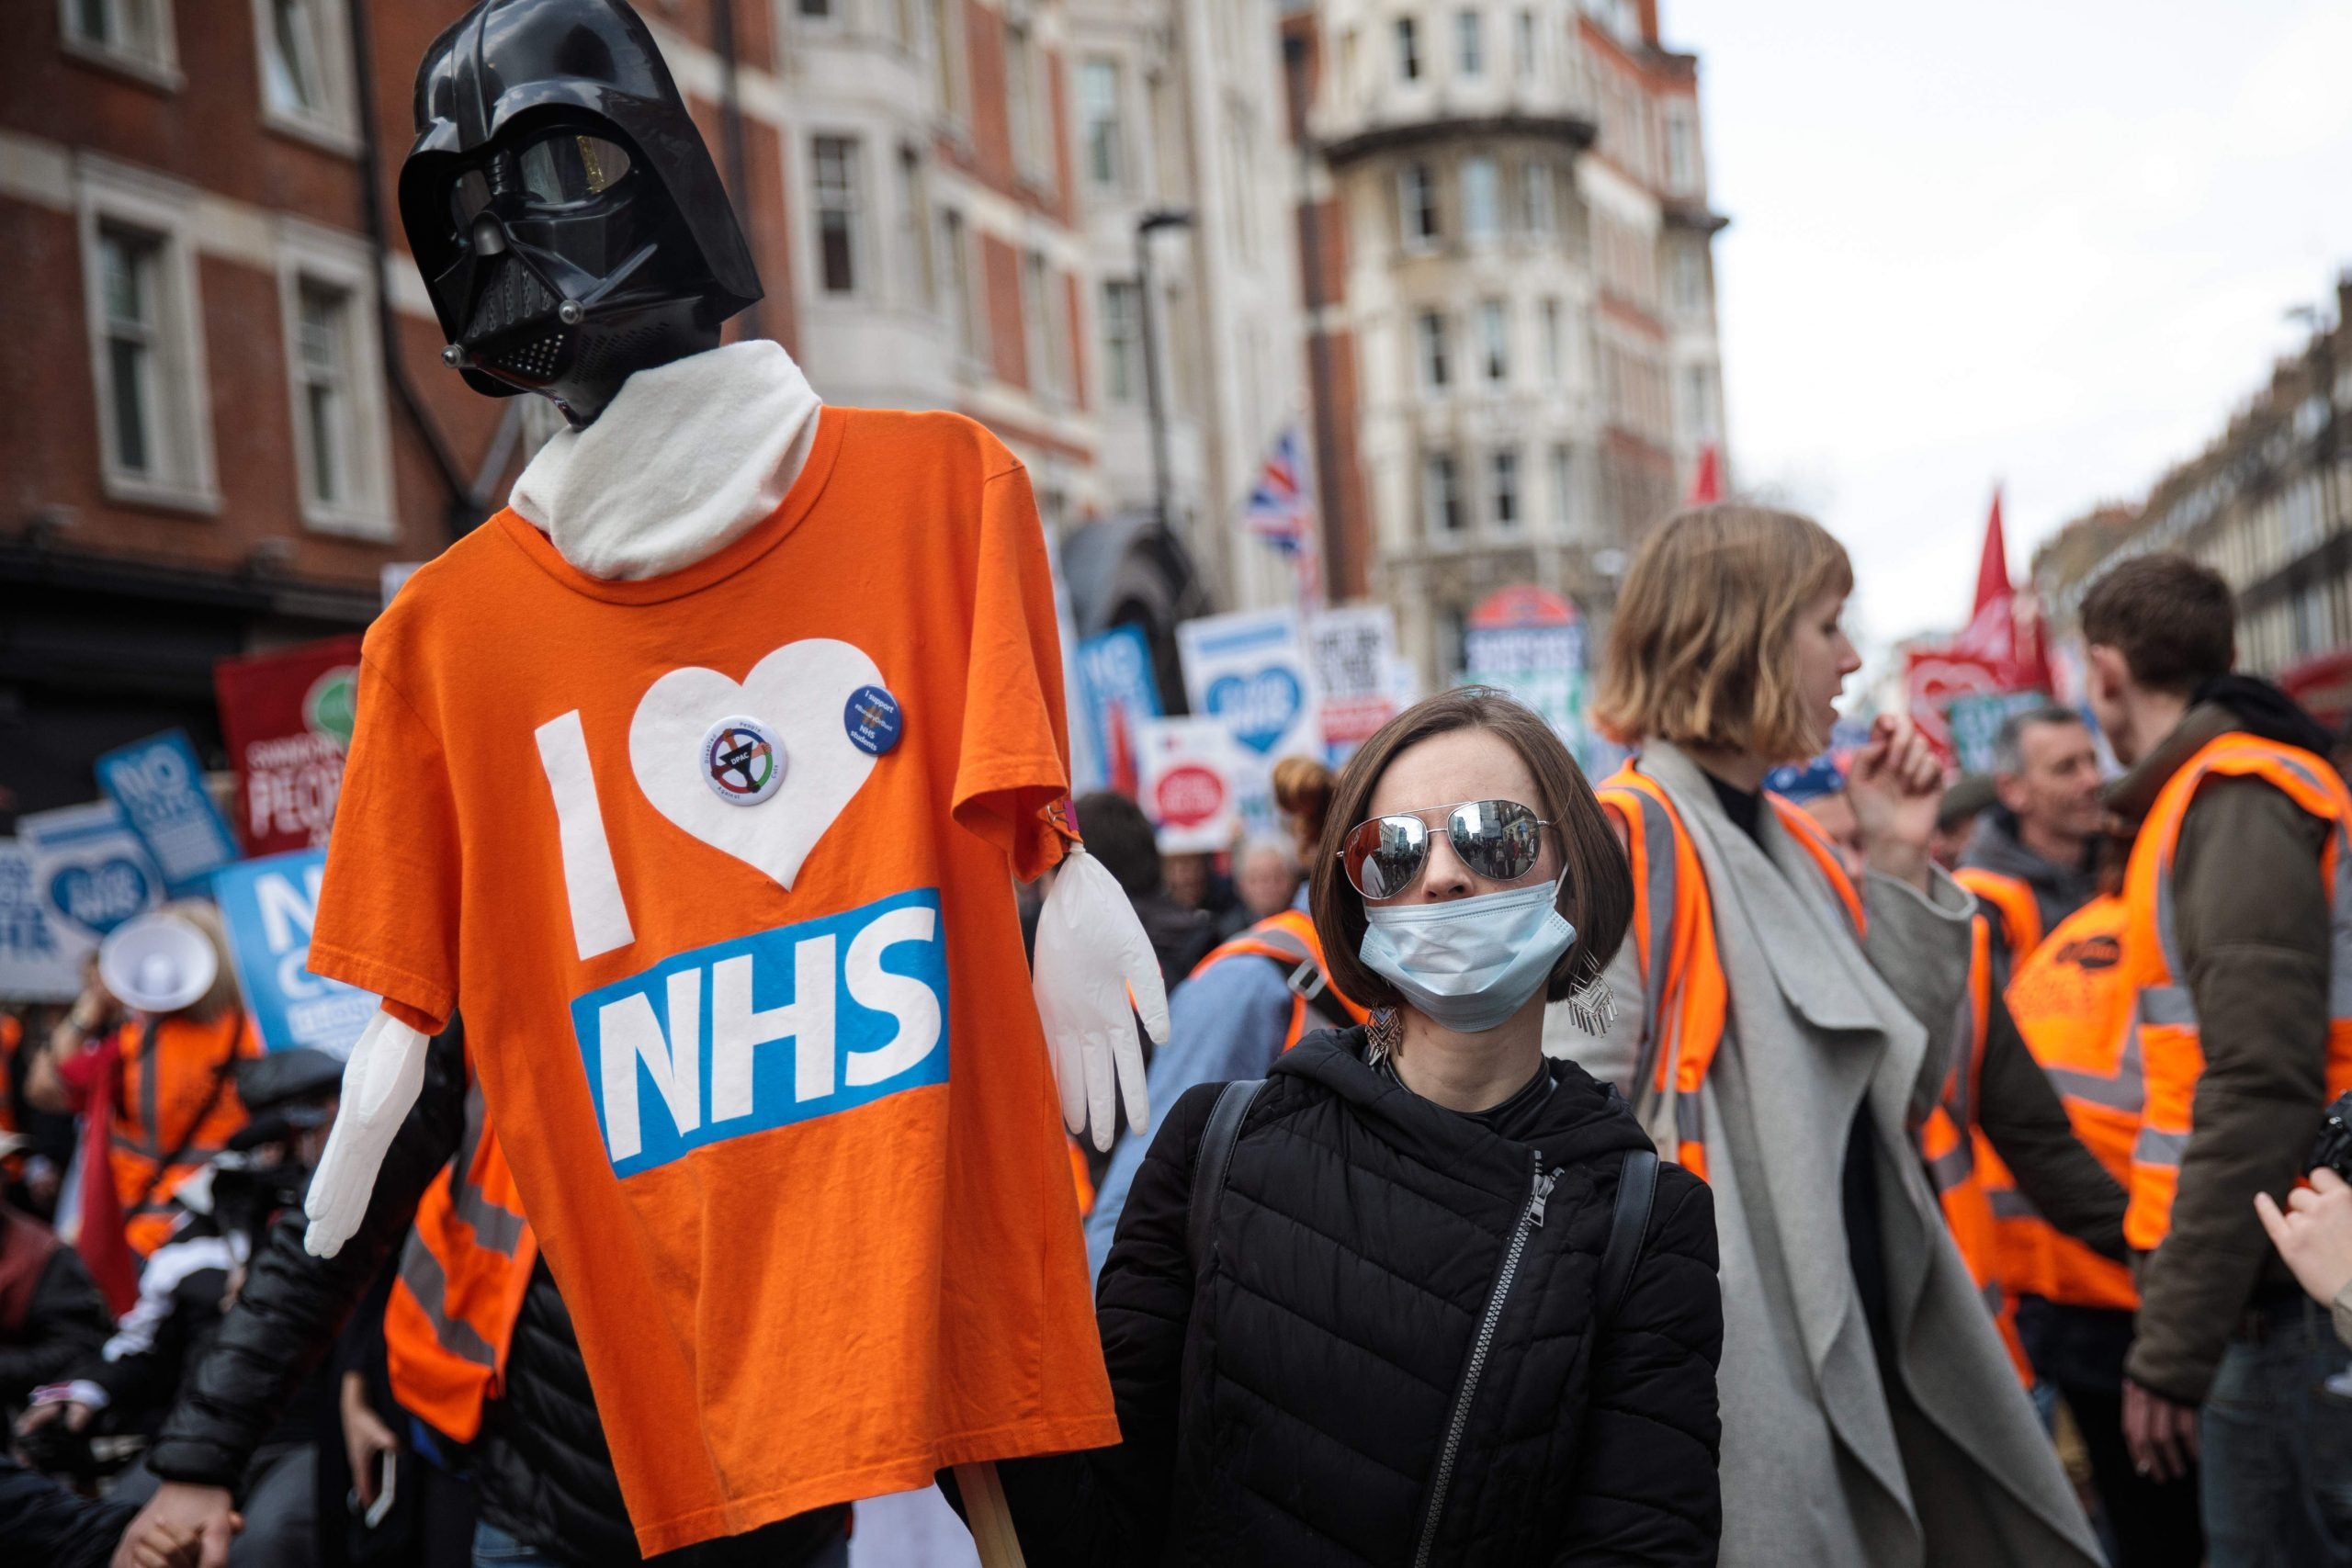 What does the election mean for the NHS? As a doctor, I'm worried